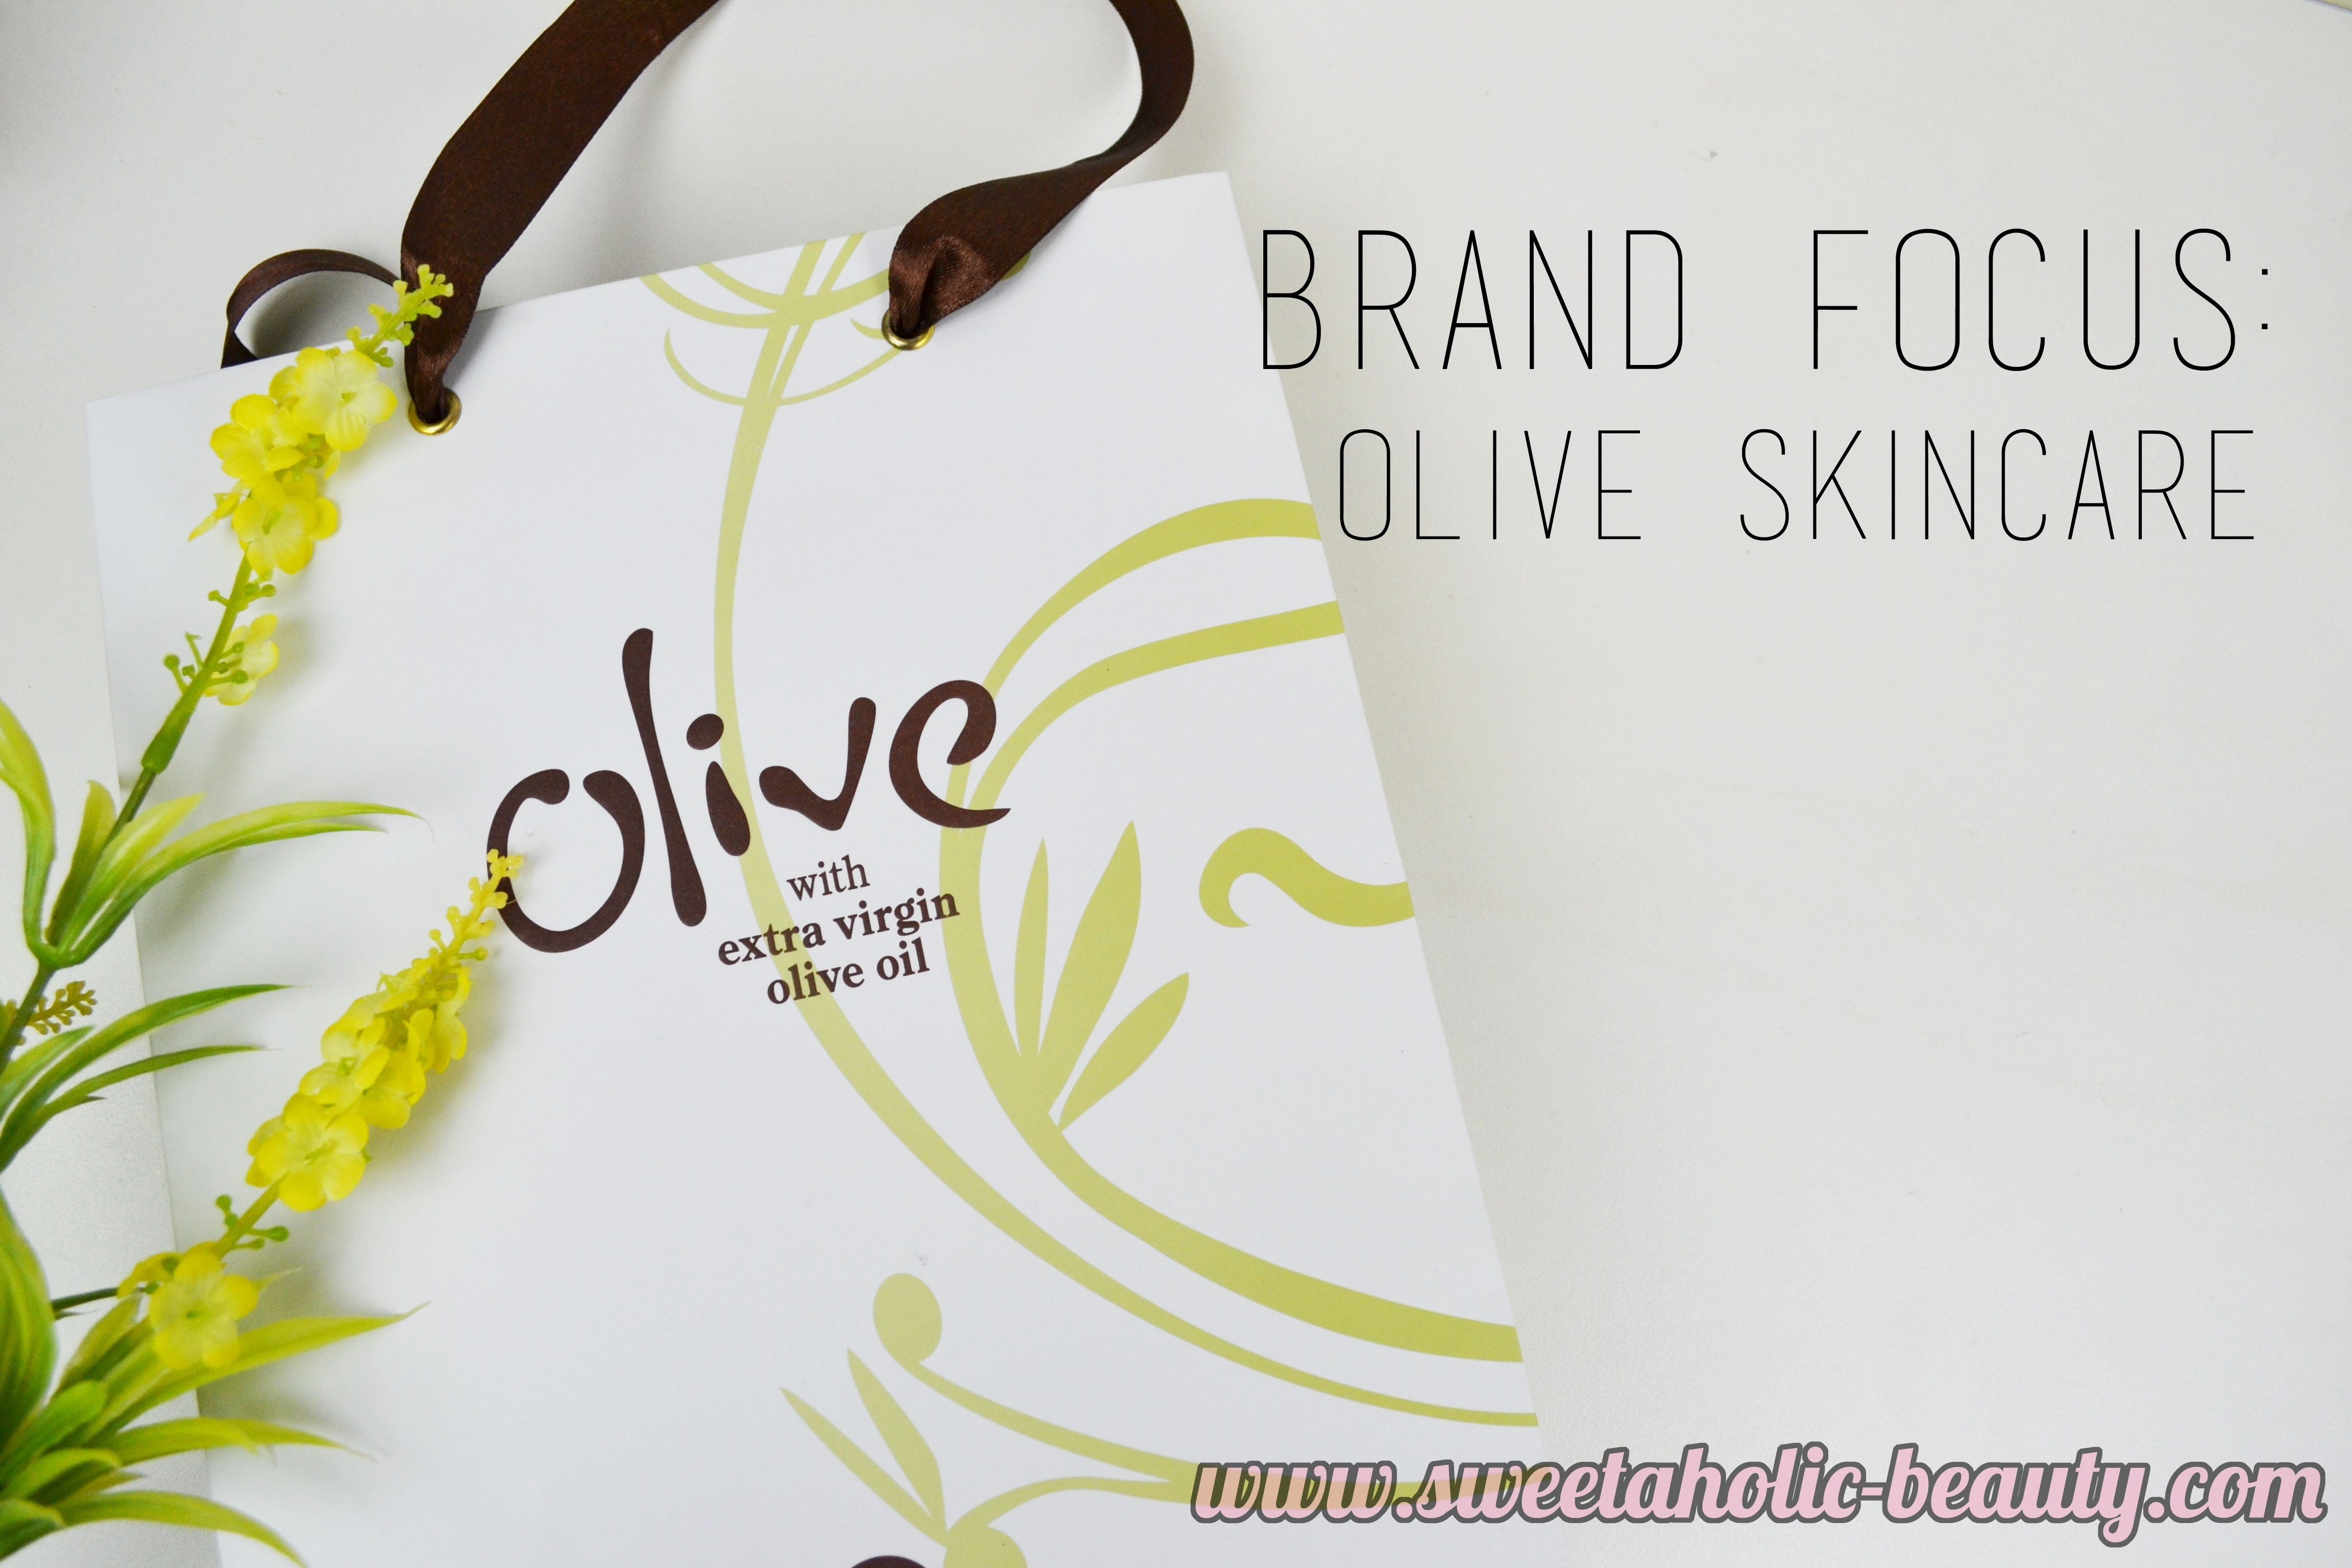 Brand Focus: Olive Skincare - Sweetaholic Beauty